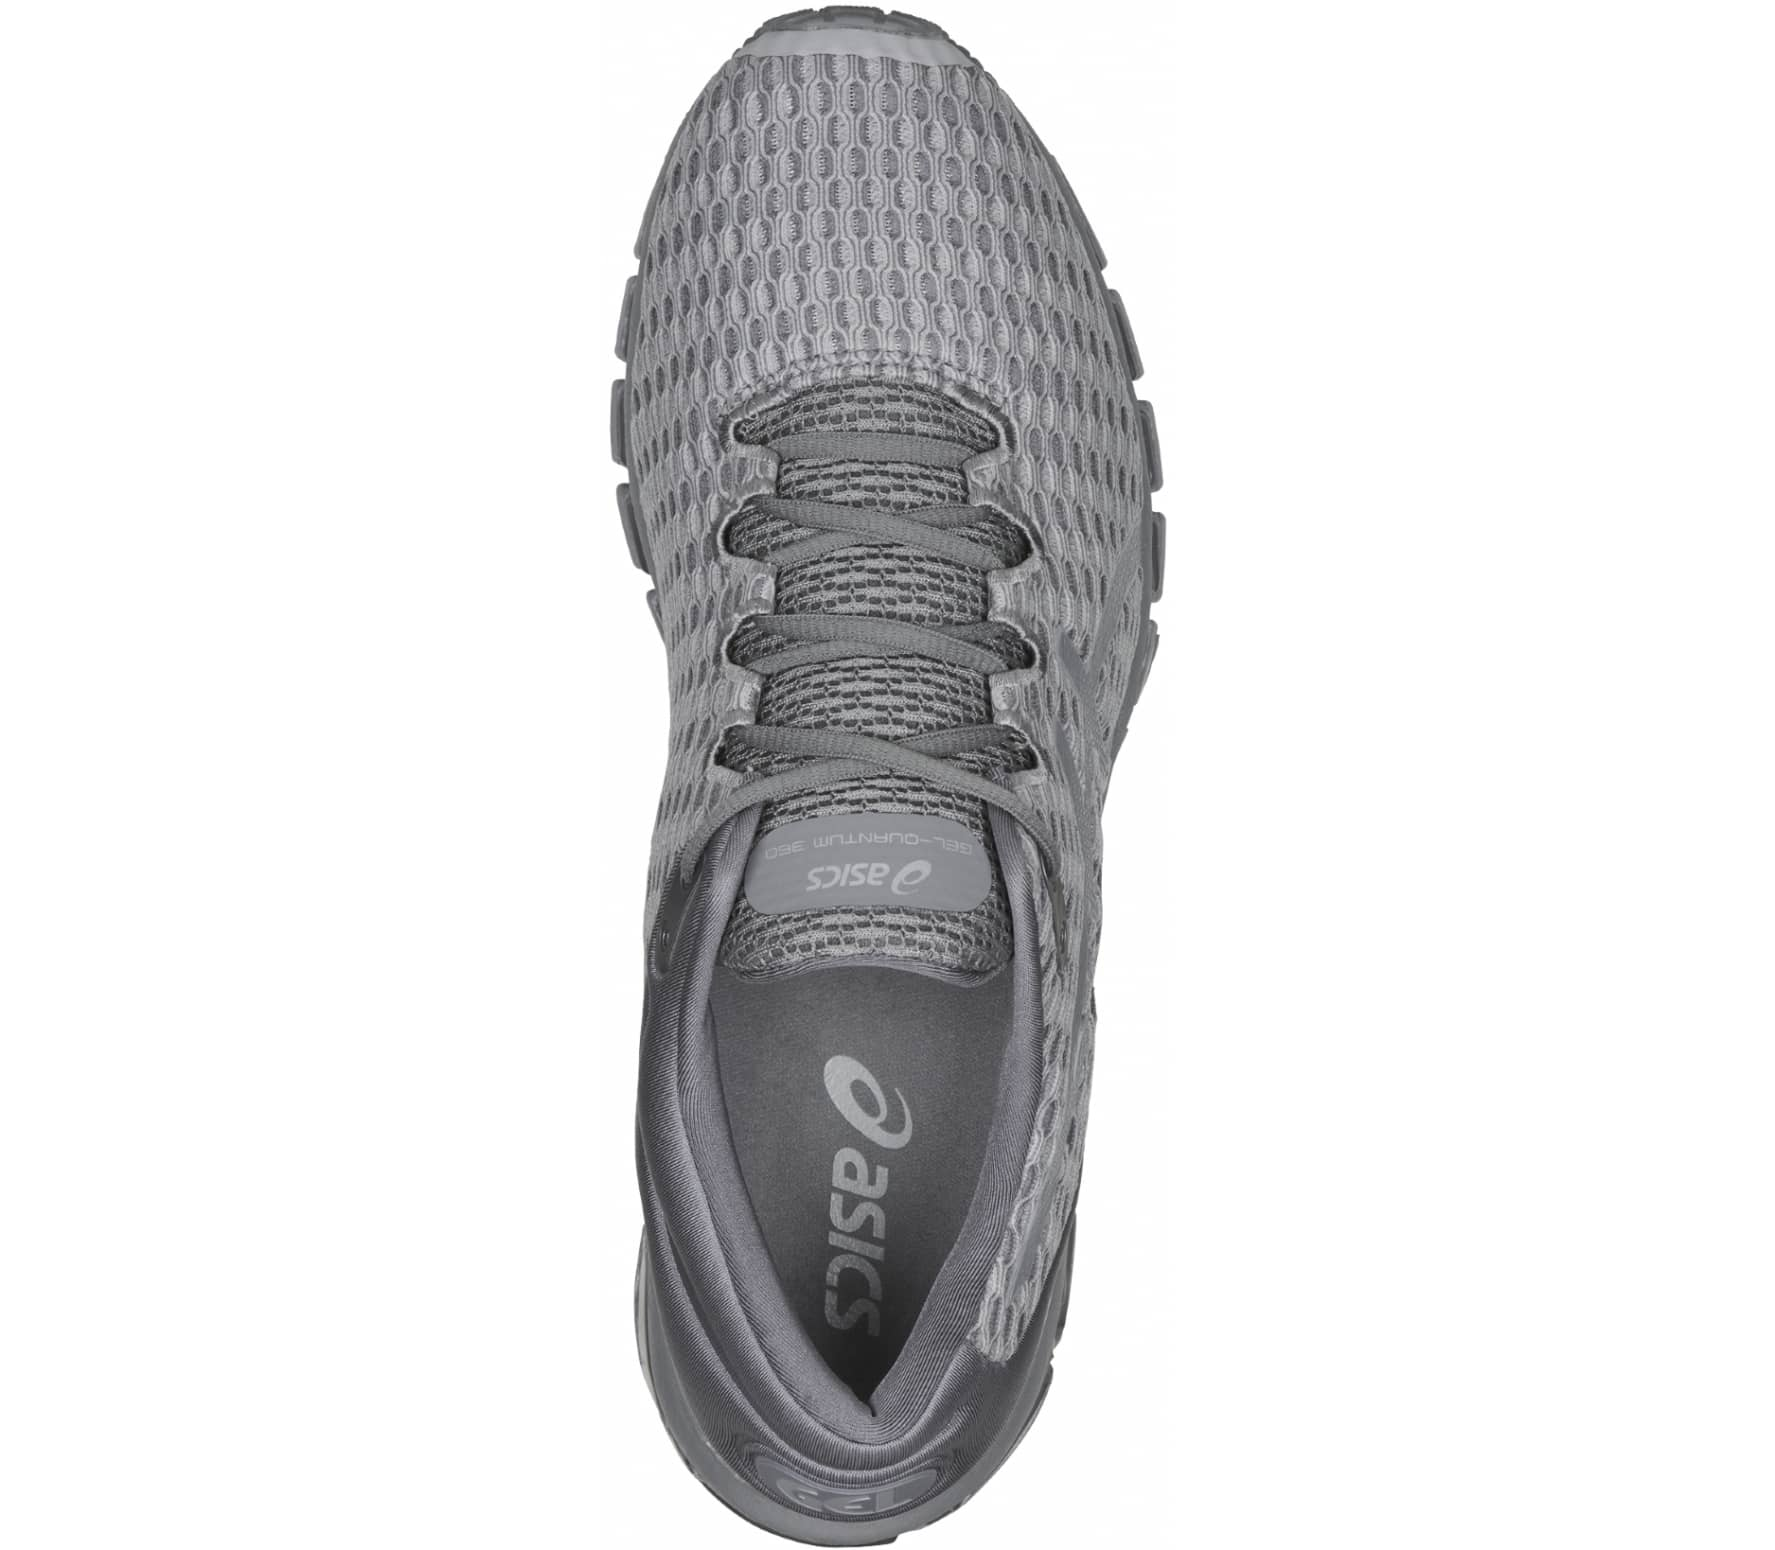 It Buy Shoes Asics Men's Running Shift Gel Quantum 360 Mx grey UxfcFHpqRw